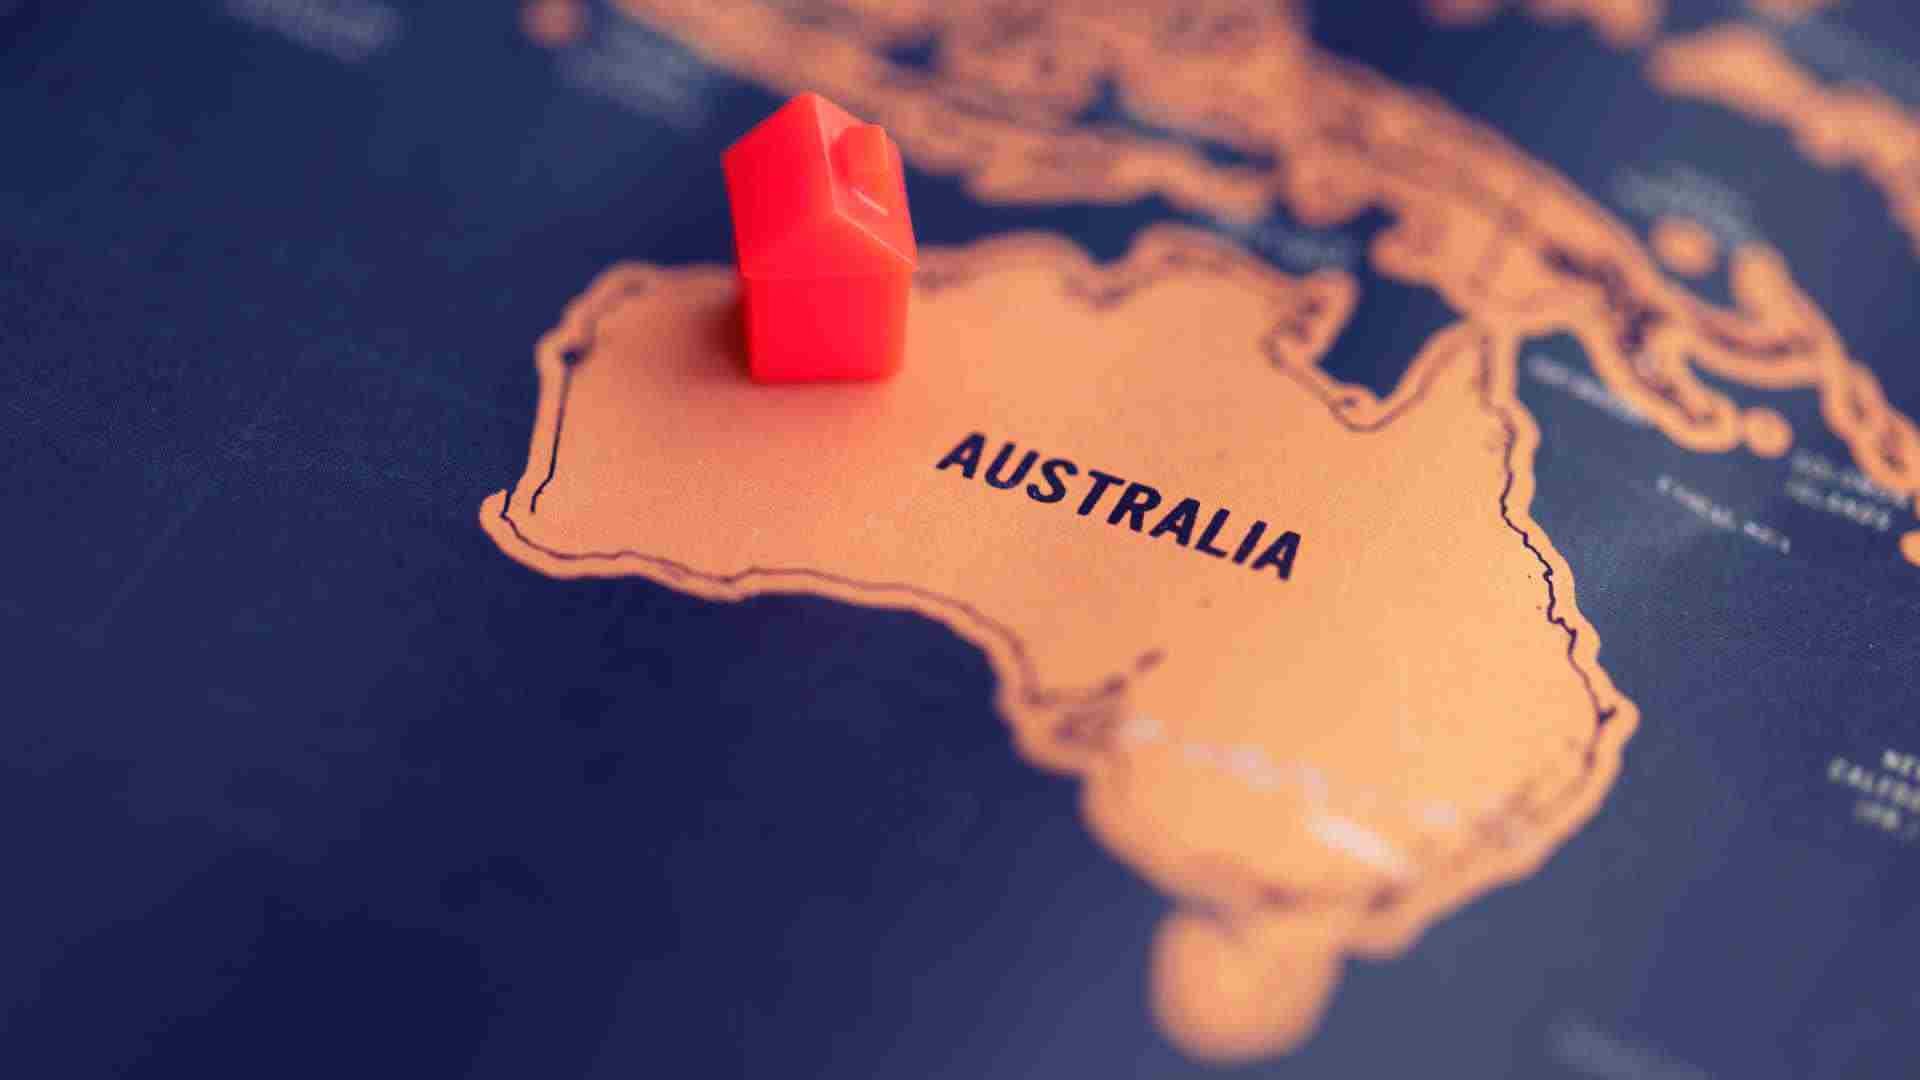 Foreign property investment dries up but Australia not alone